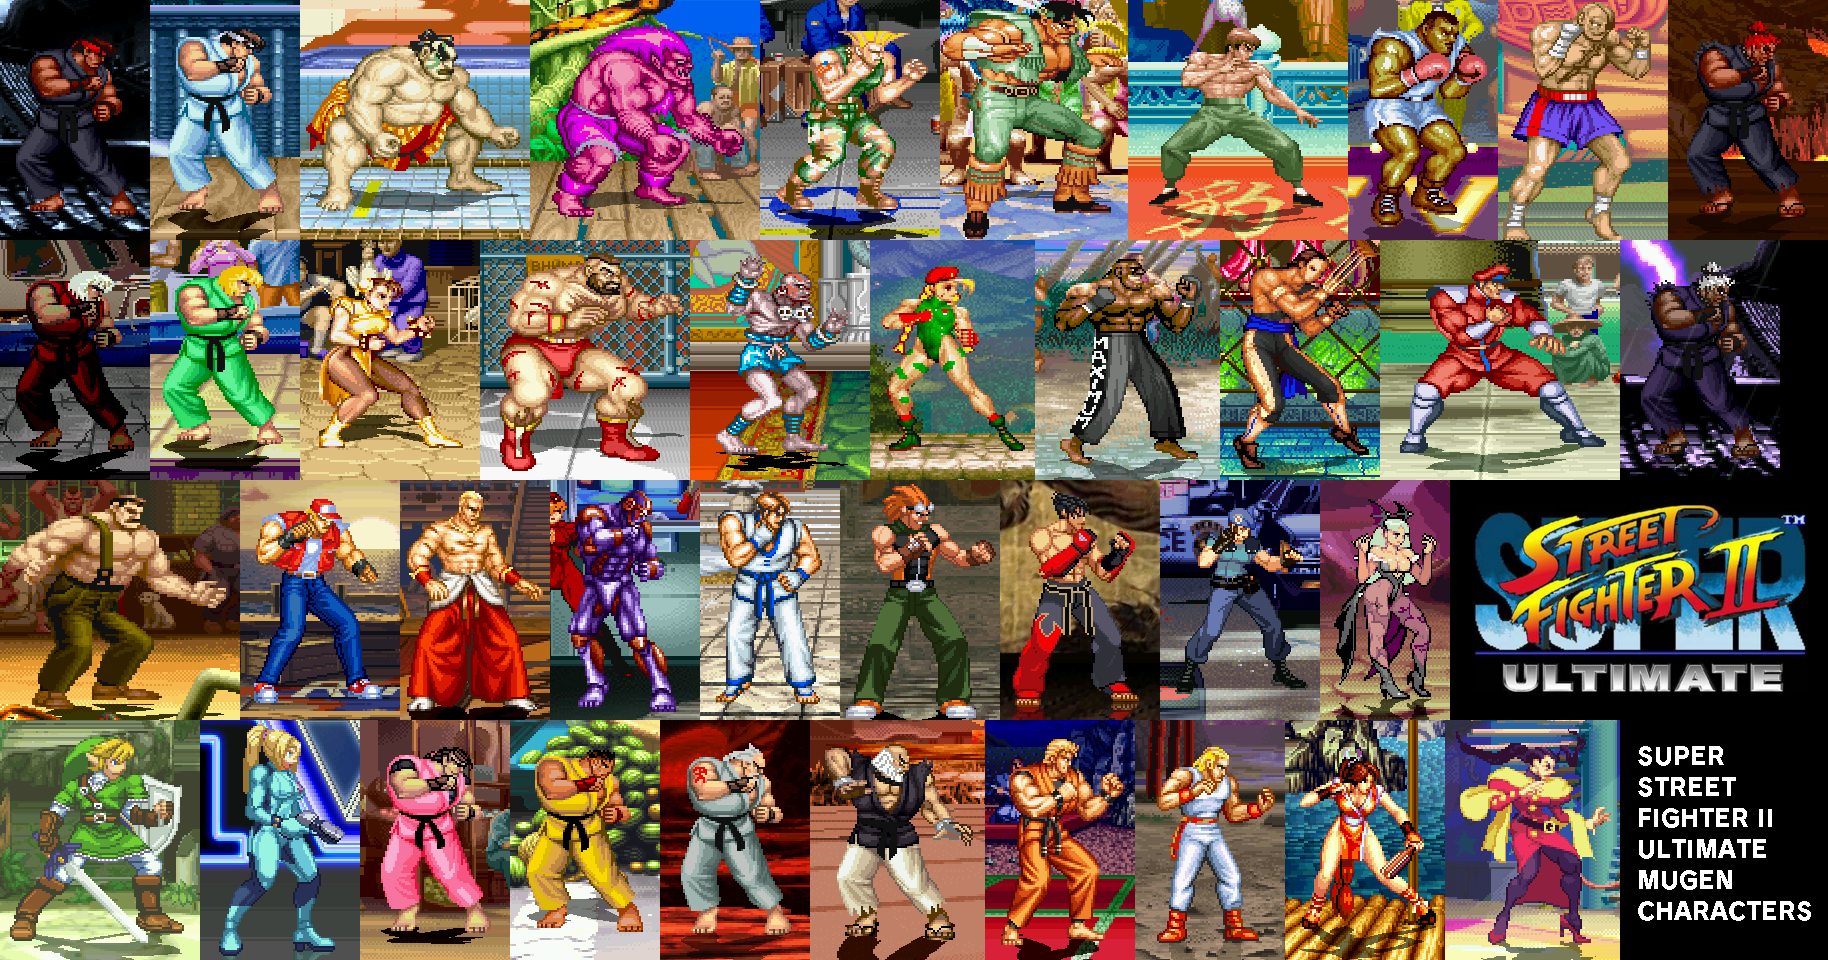 Super Street Fighter ll Ultimate Mugen Characters by